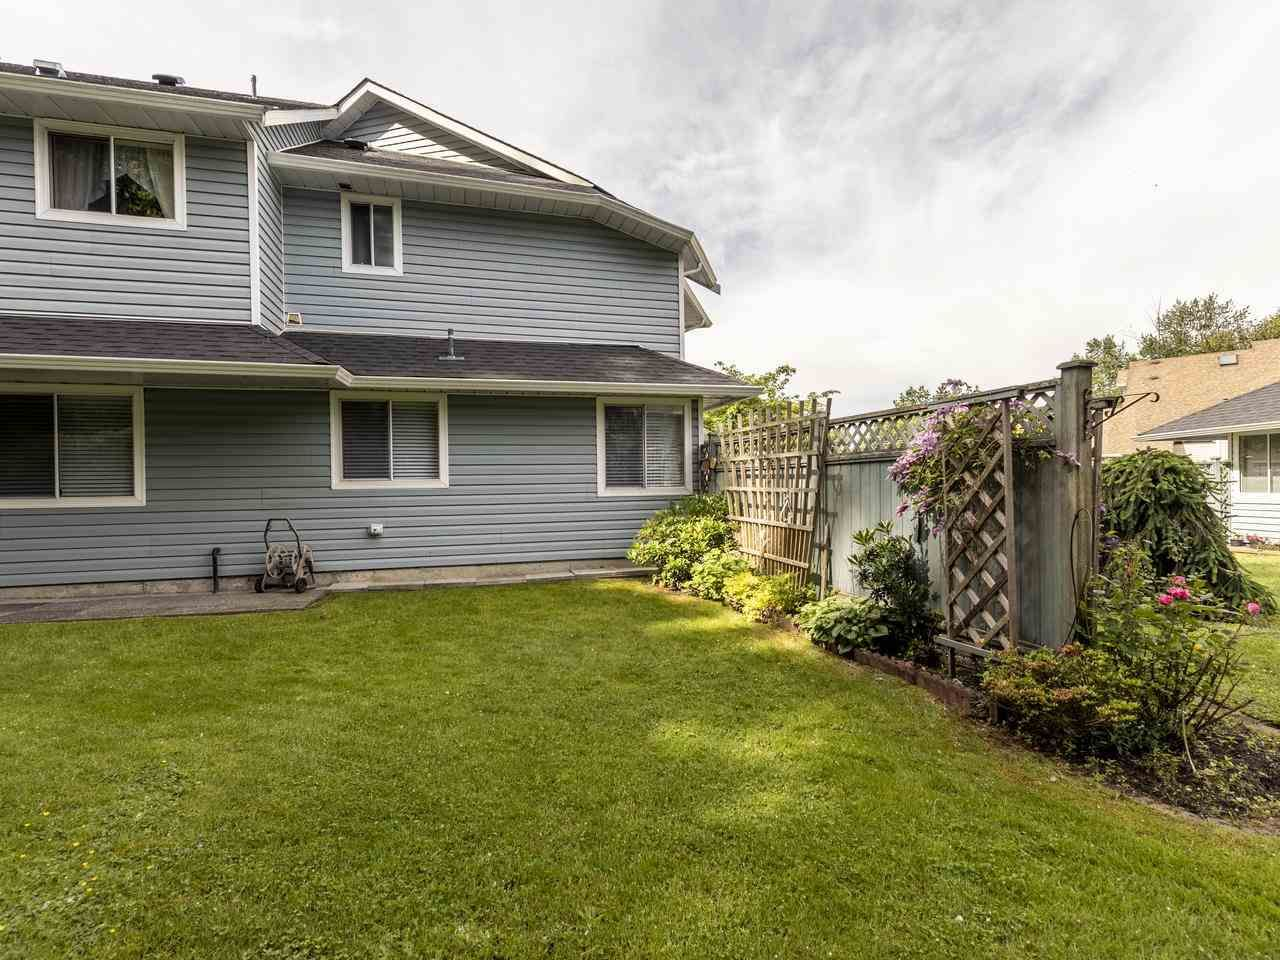 """Photo 5: Photos: 127 22555 116 Avenue in Maple Ridge: East Central Townhouse for sale in """"HILLSIDE"""" : MLS®# R2493046"""